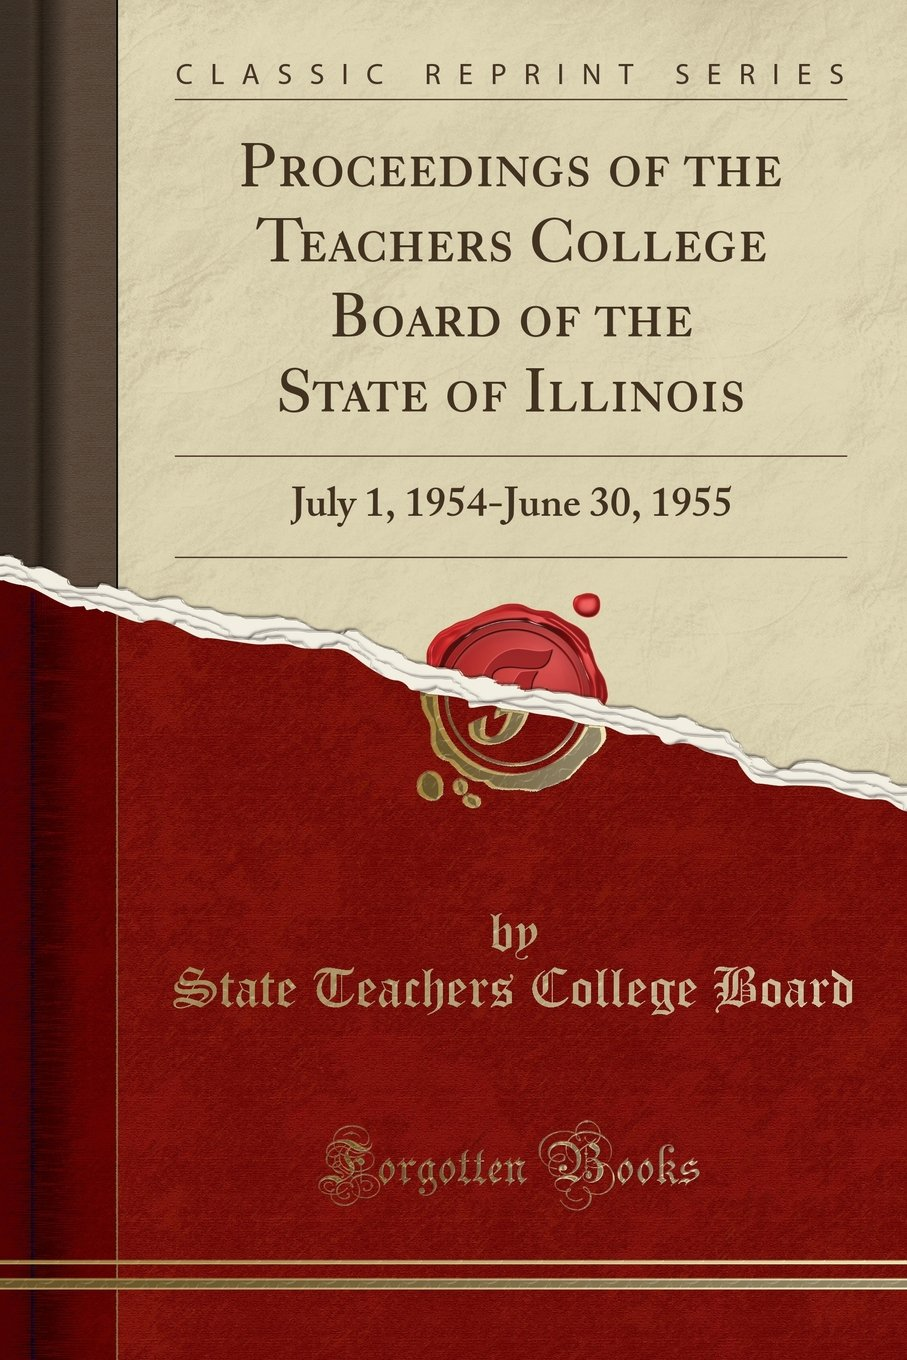 Download Proceedings of the Teachers College Board of the State of Illinois: July 1, 1954-June 30, 1955 (Classic Reprint) pdf